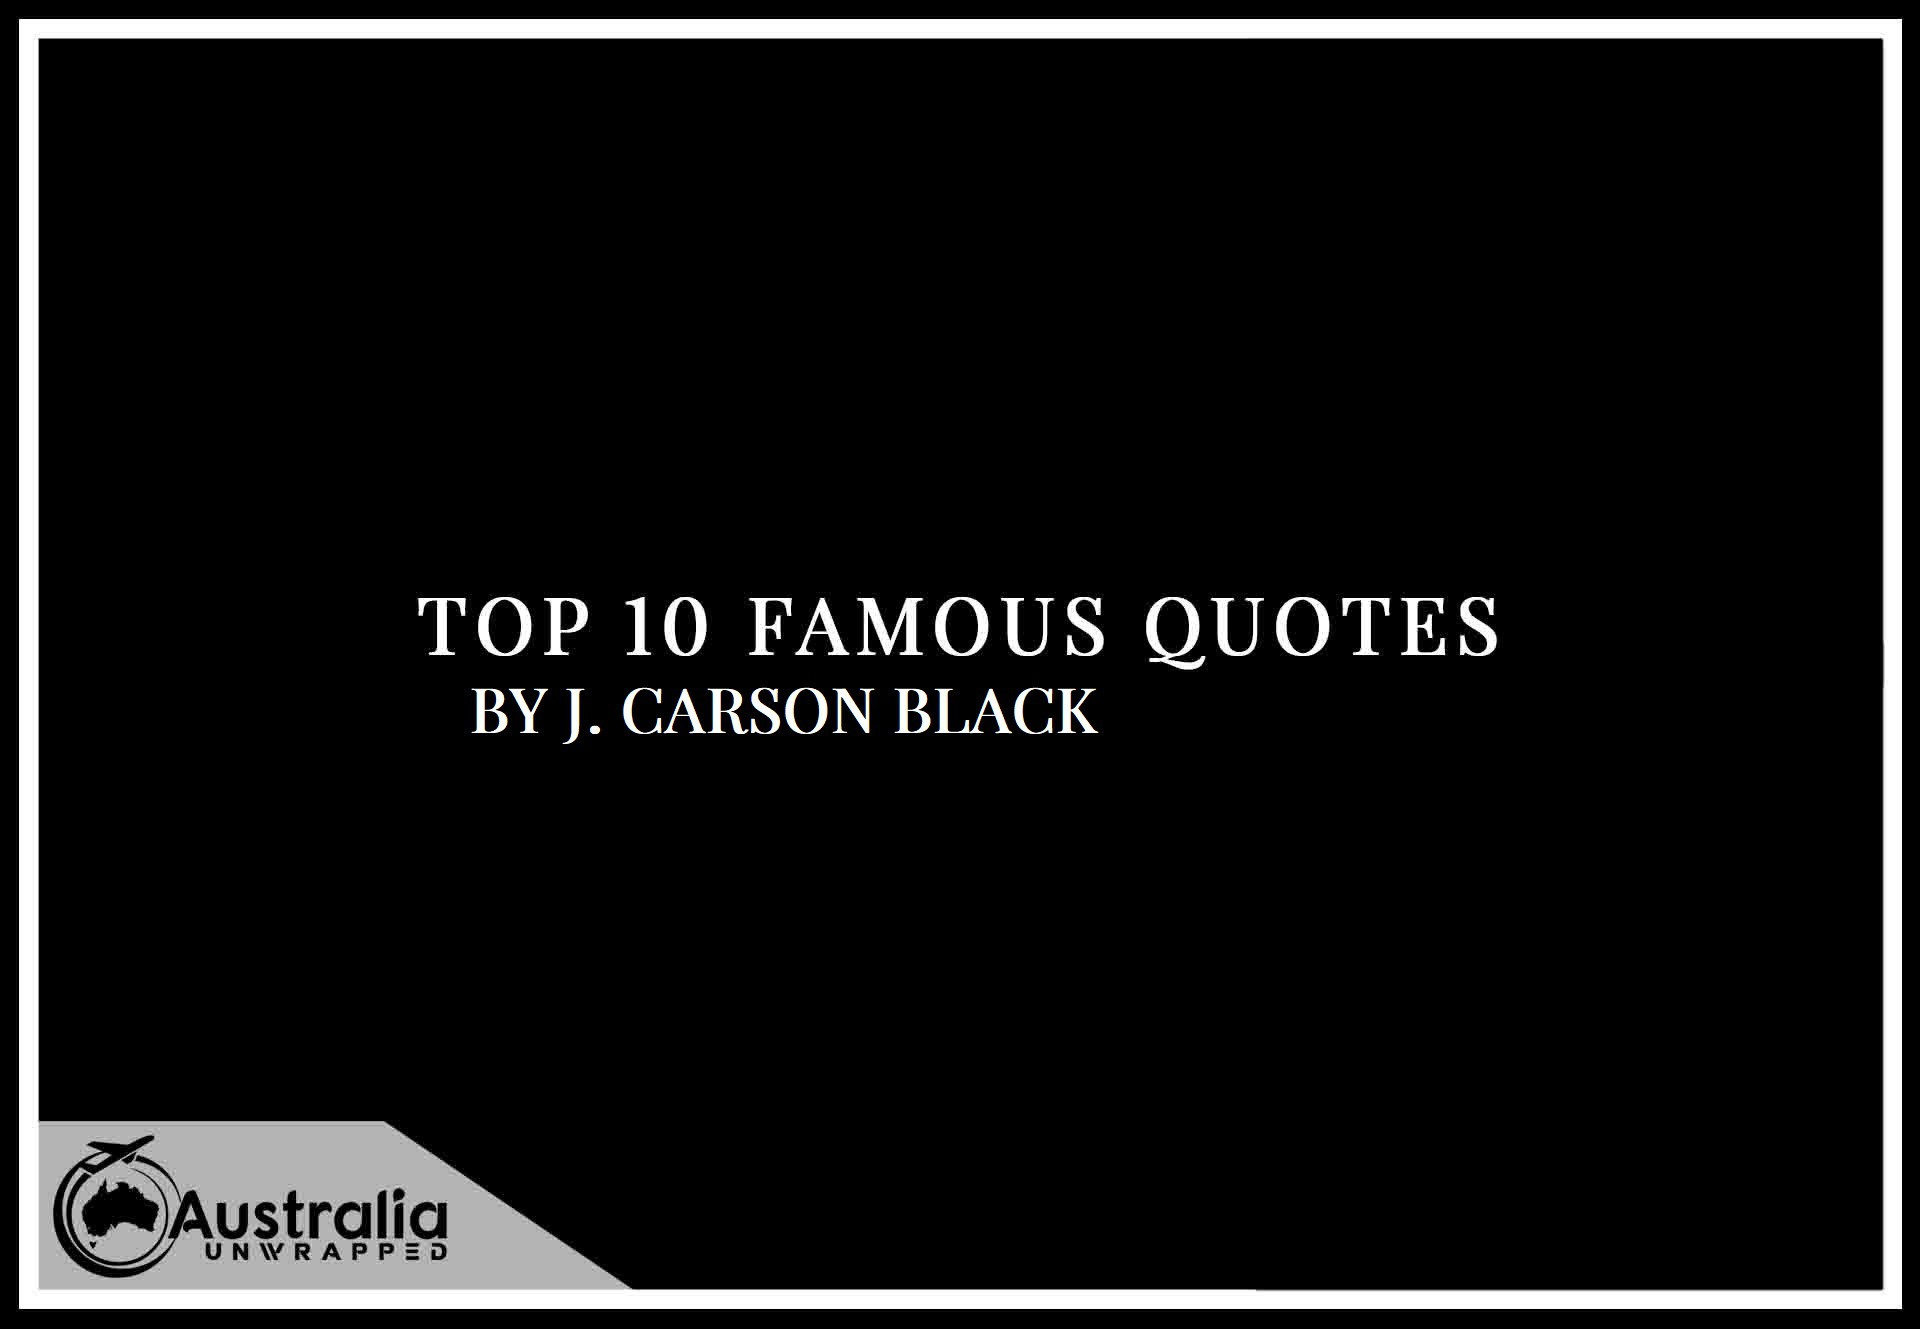 Top 10 Famous Quotes by Author J. Carson Black